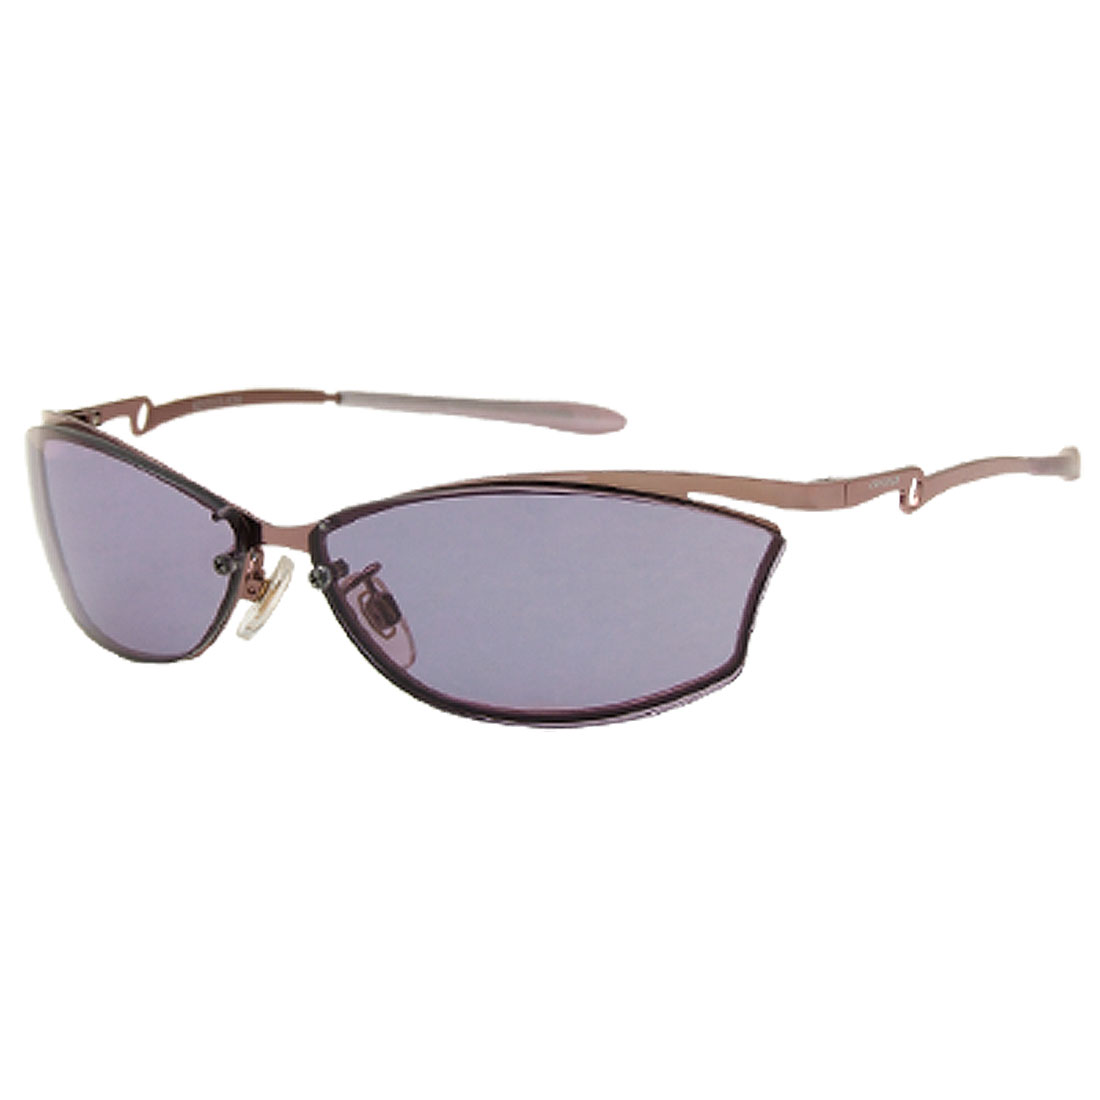 Fashion Metal Arms Purple Ladies' Protective Eyewear Sunglasses